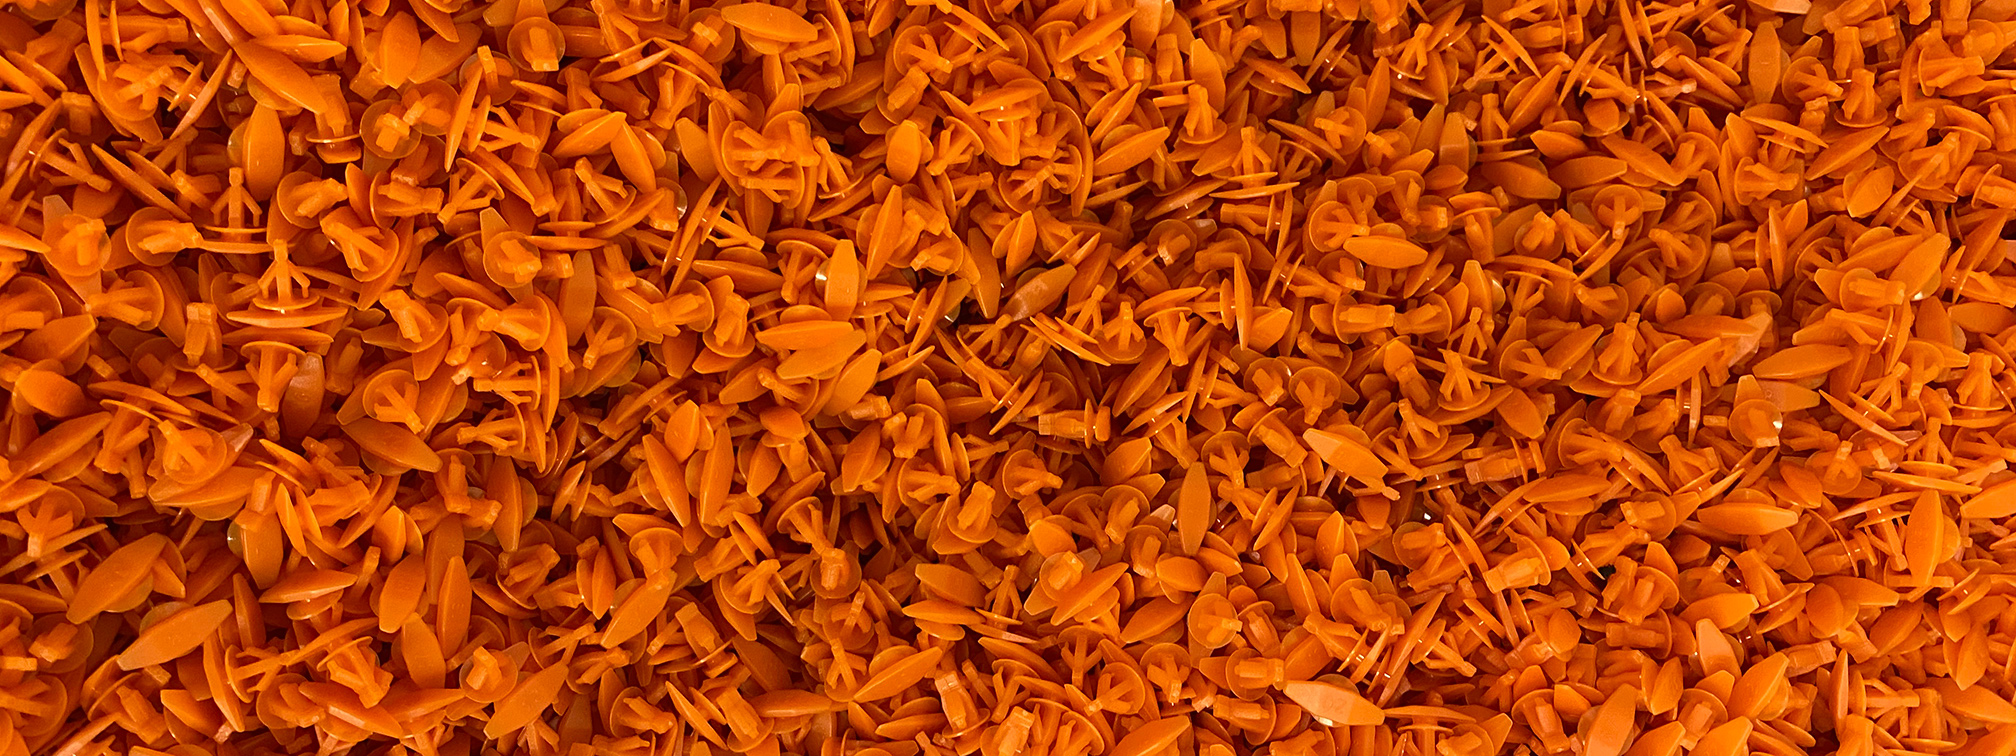 Injection Moulded Plastic Orange Clips